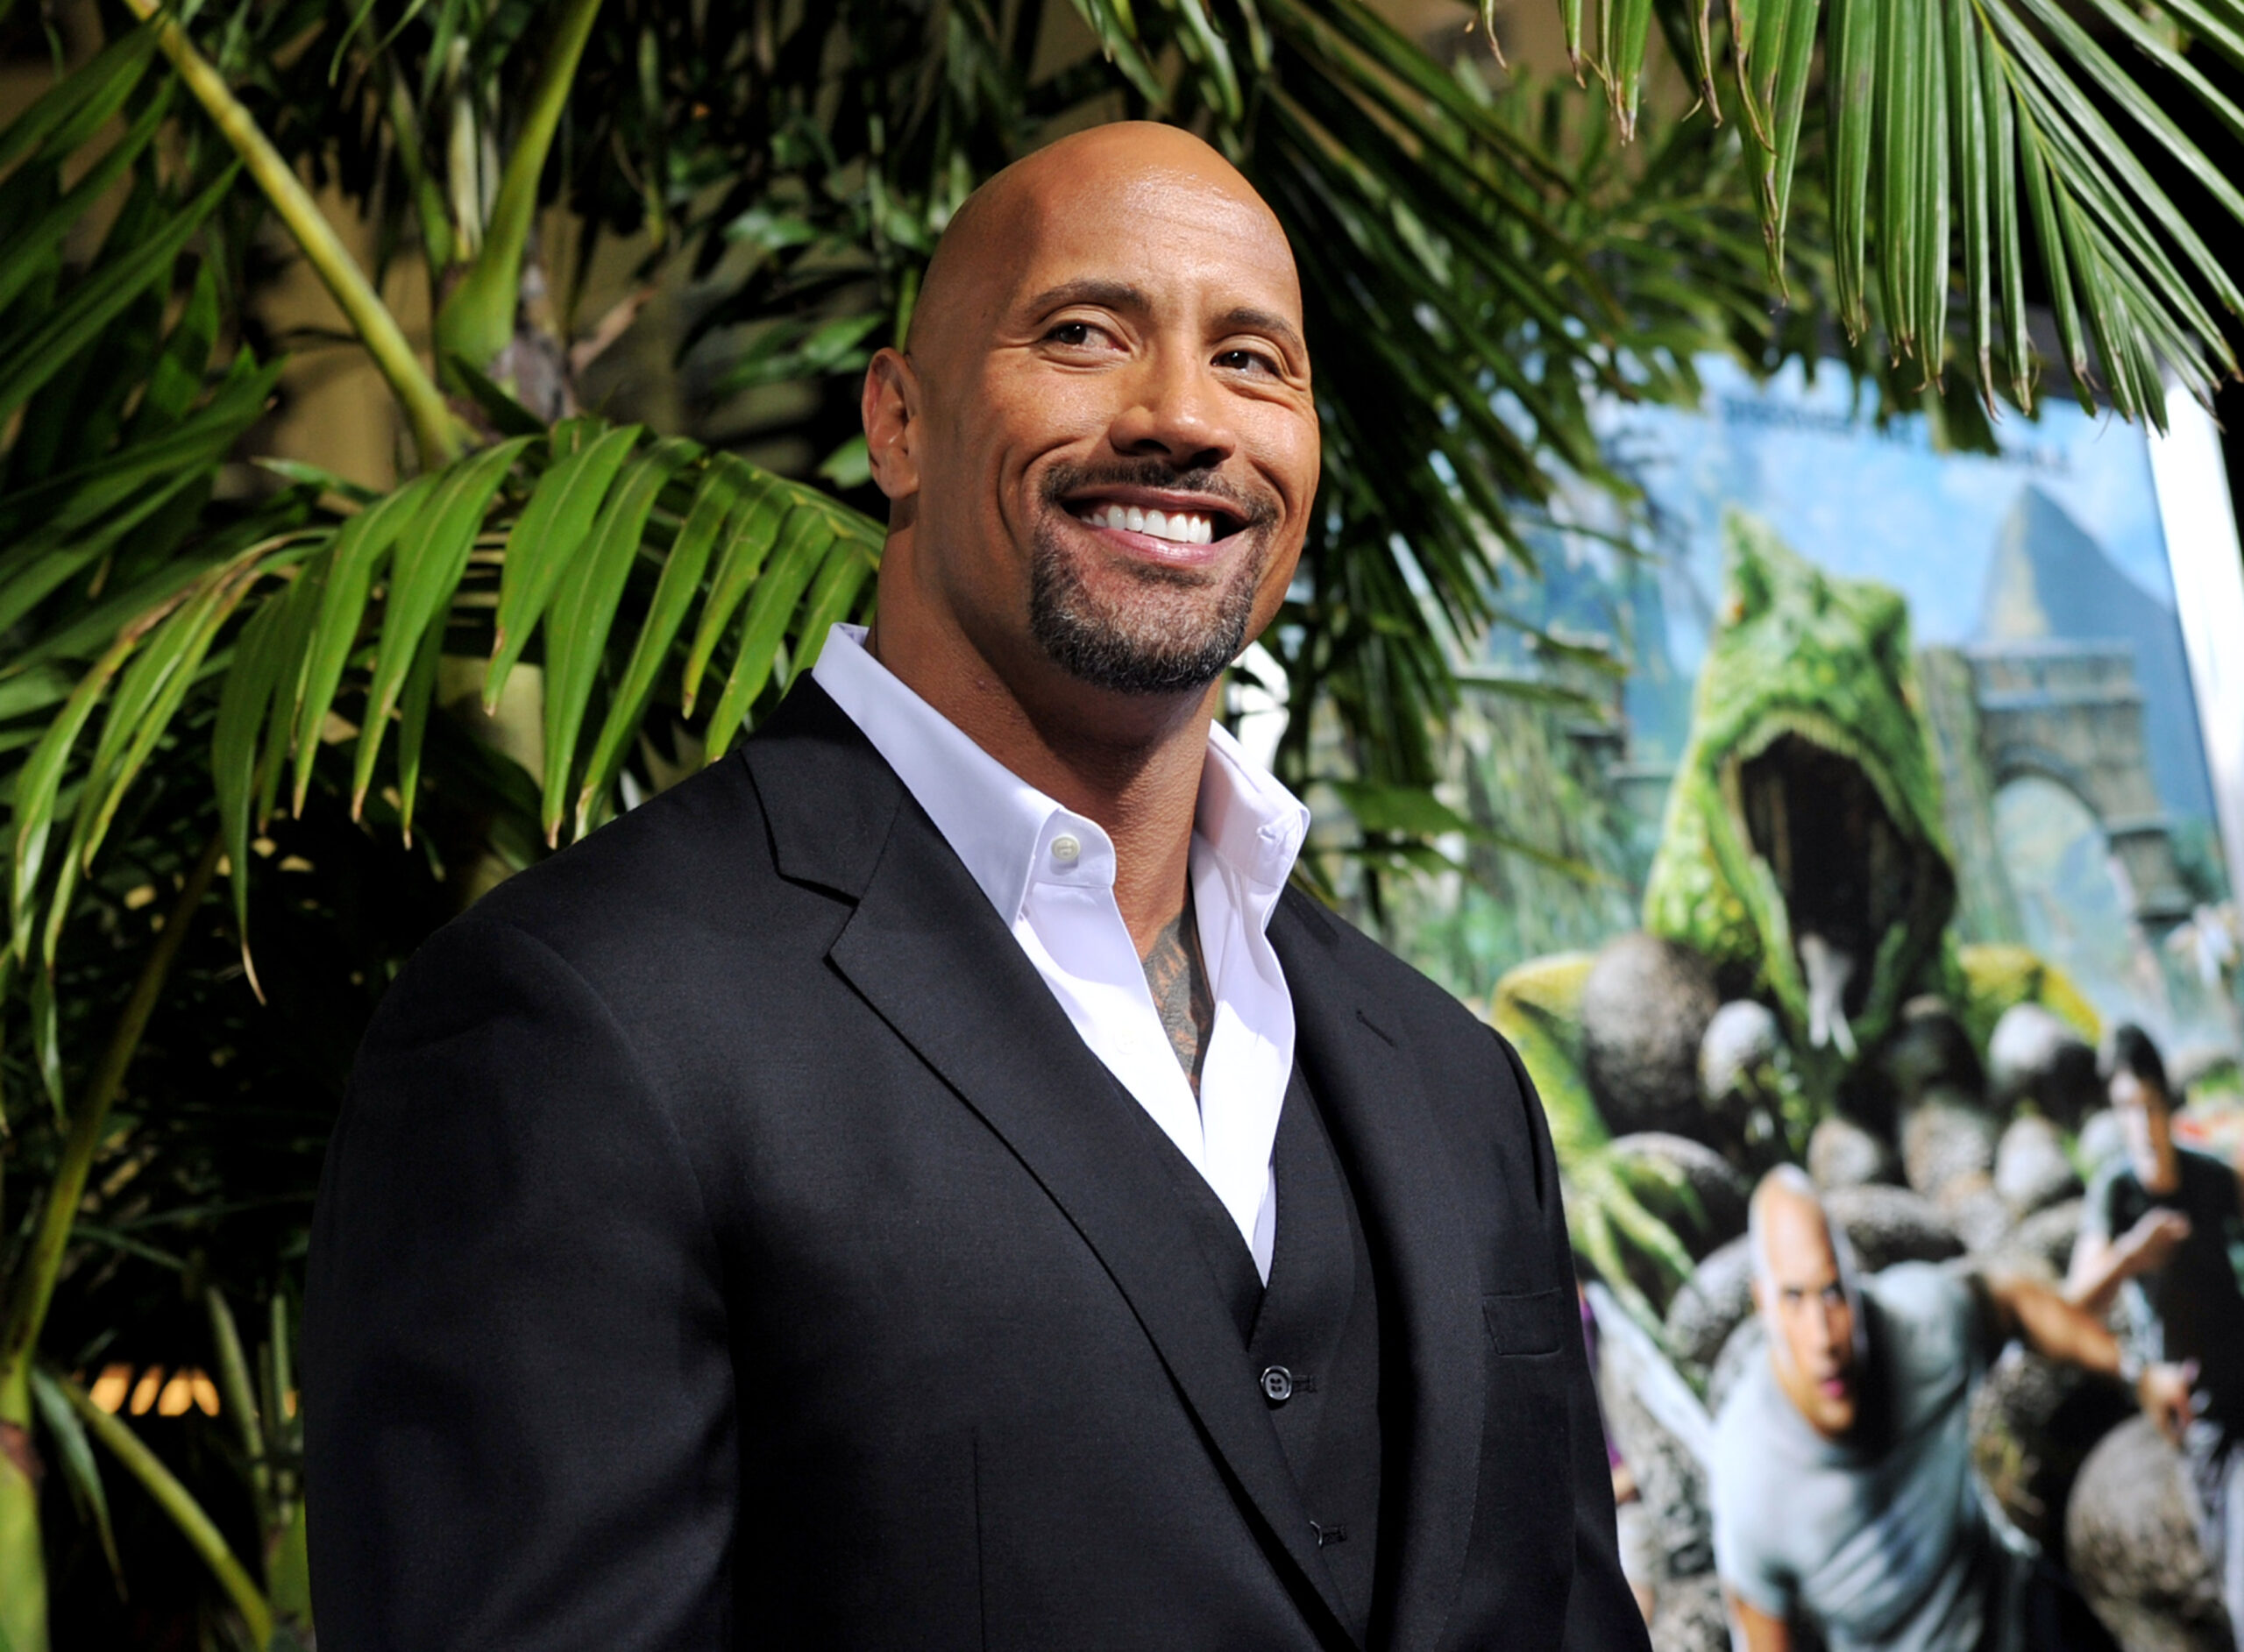 Dwayne Johnson to Trump: 'Where is our compassionate leader?'